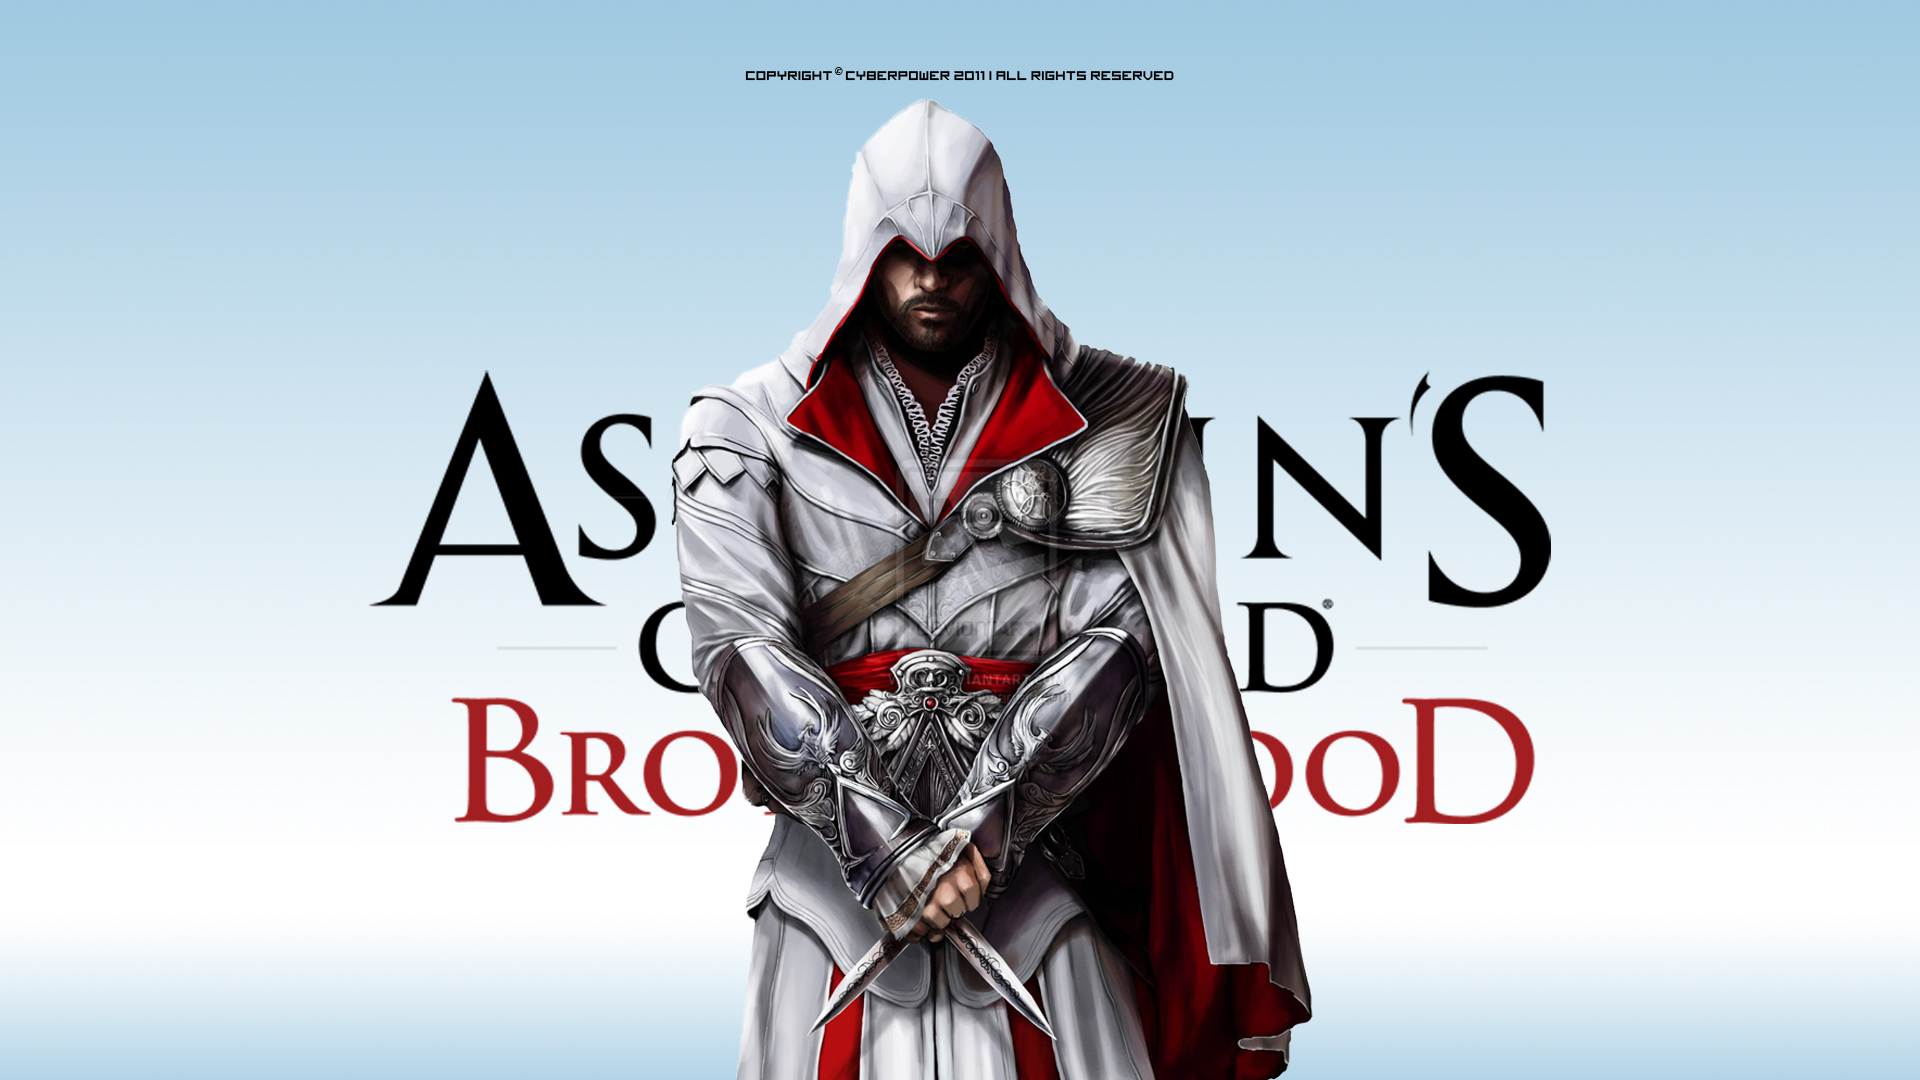 Video Game - Assassin's Creed: Brotherhood   - Ezio - Auditore - Assassin - Brotherhood - Cyberpower - Epic - Blue - Hd - Cool - Awesome Wallpaper